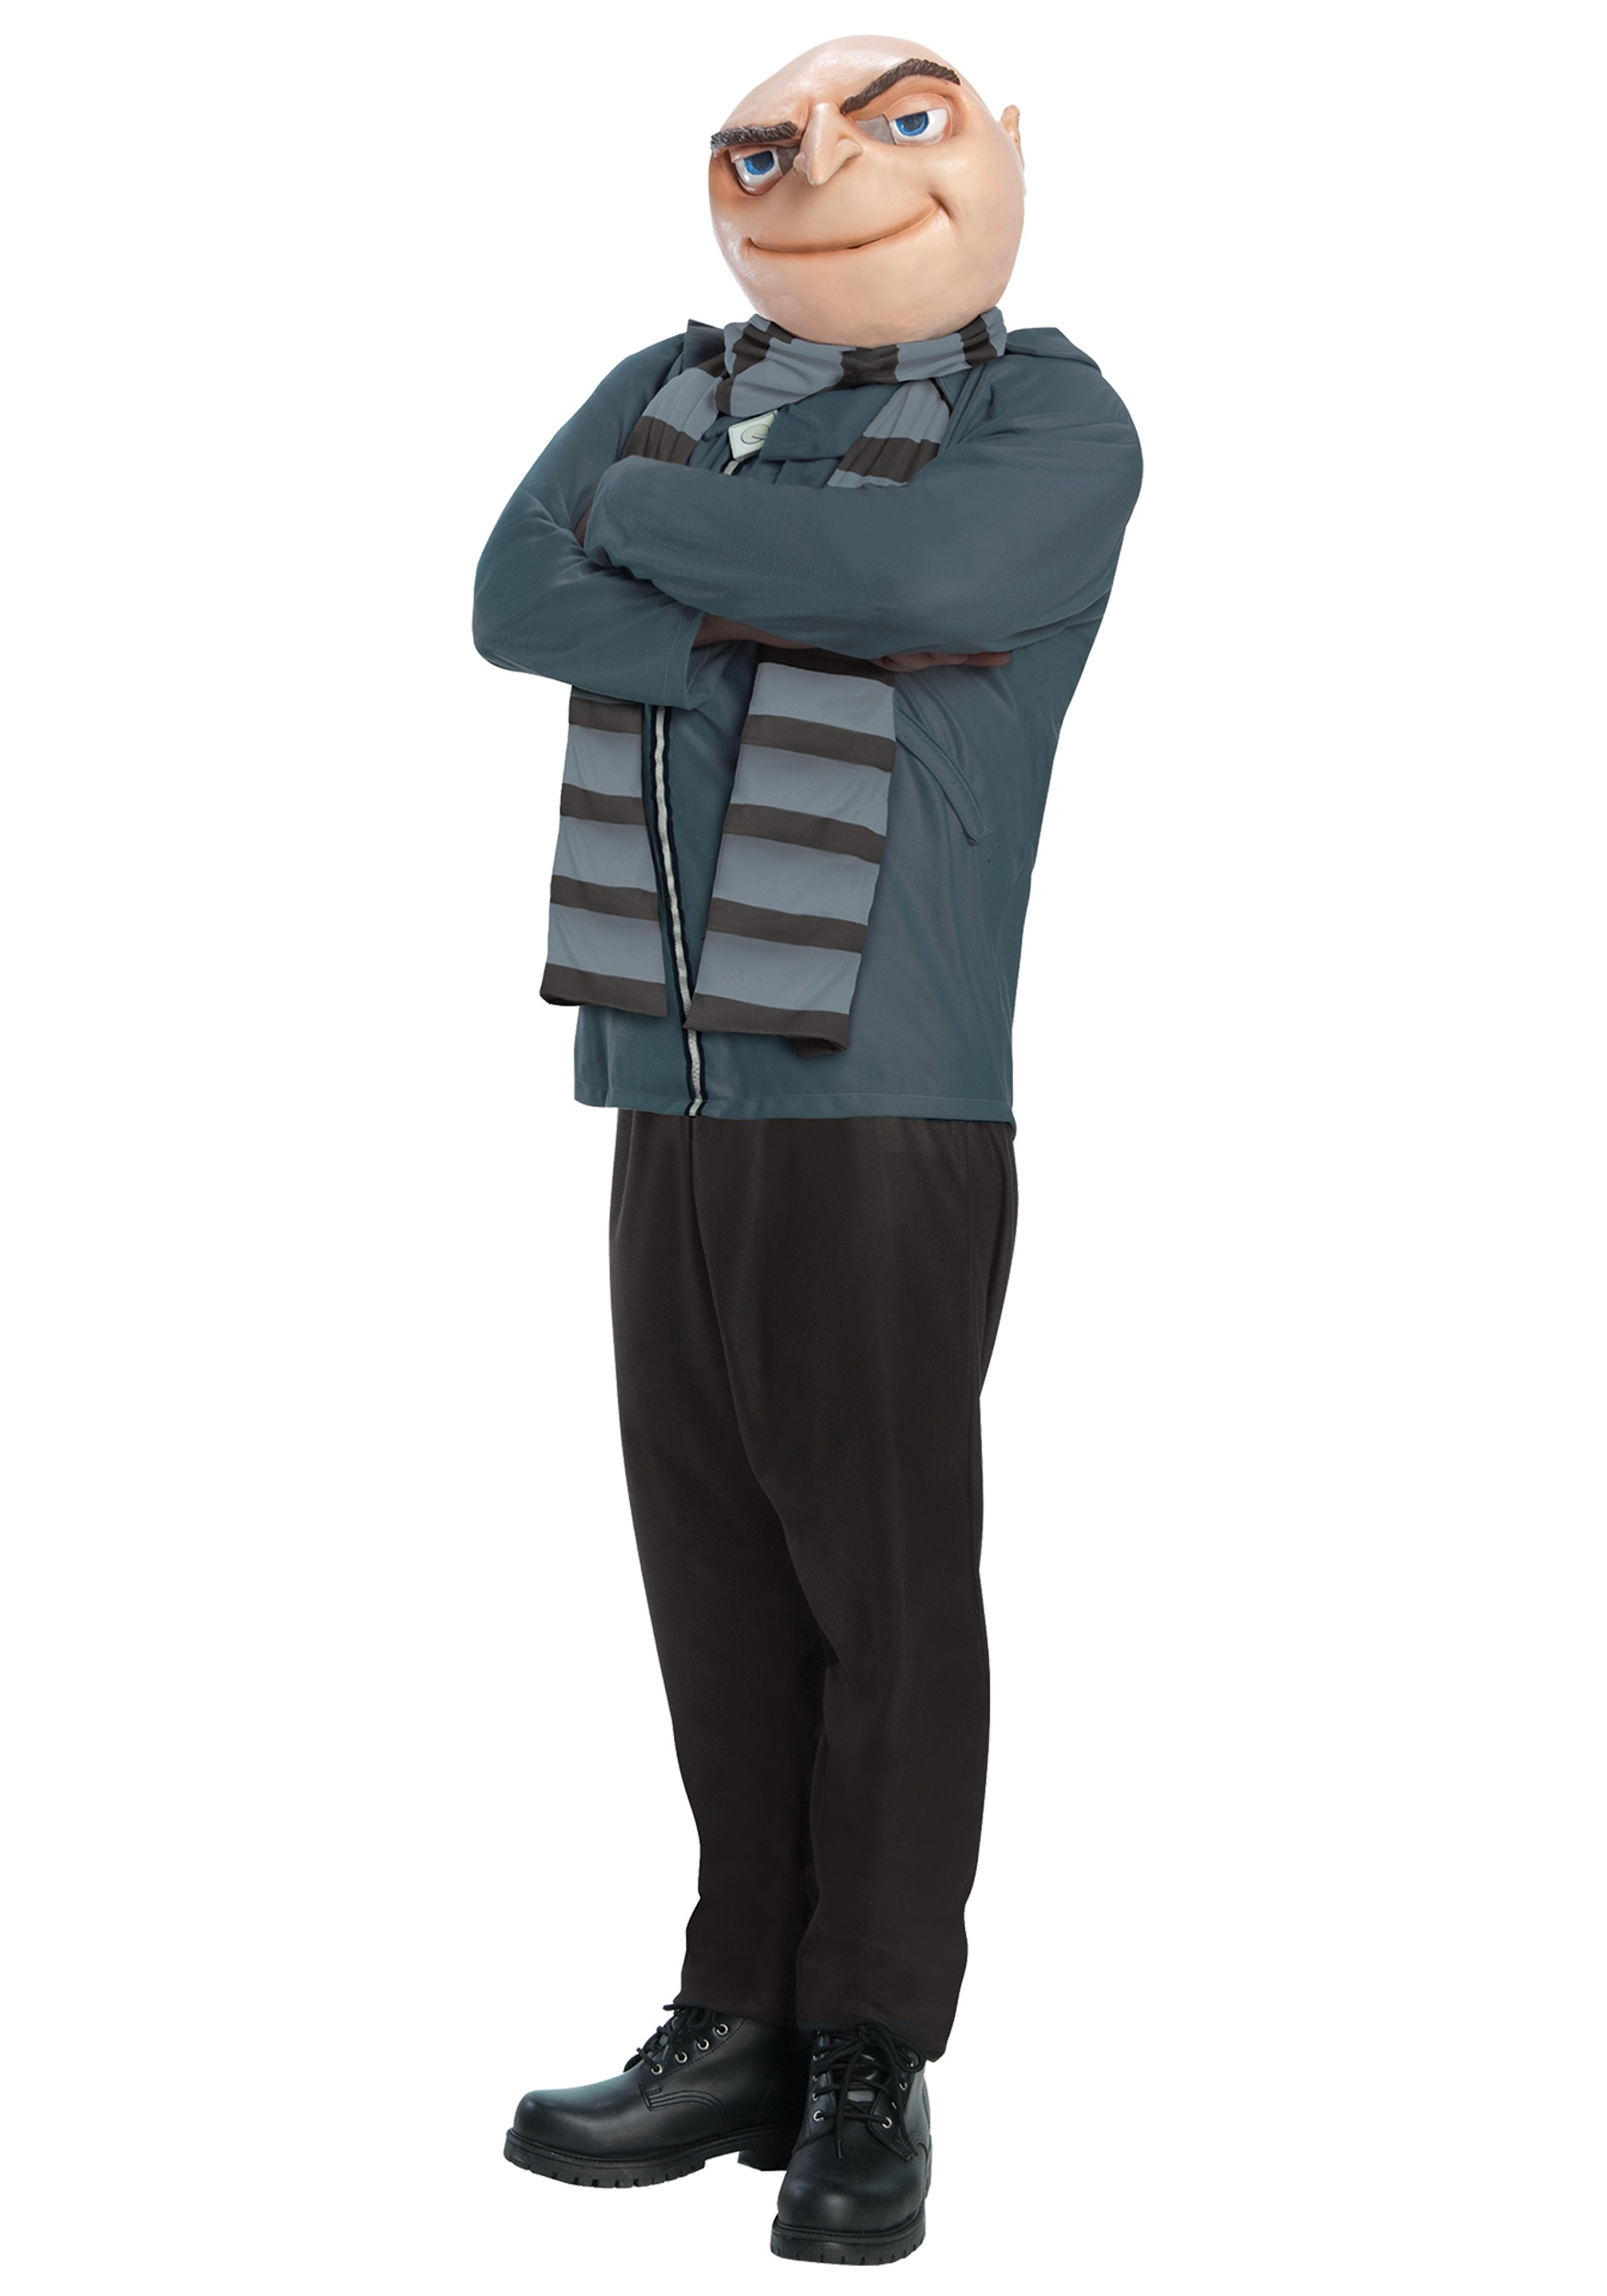 Adult Gru Costume